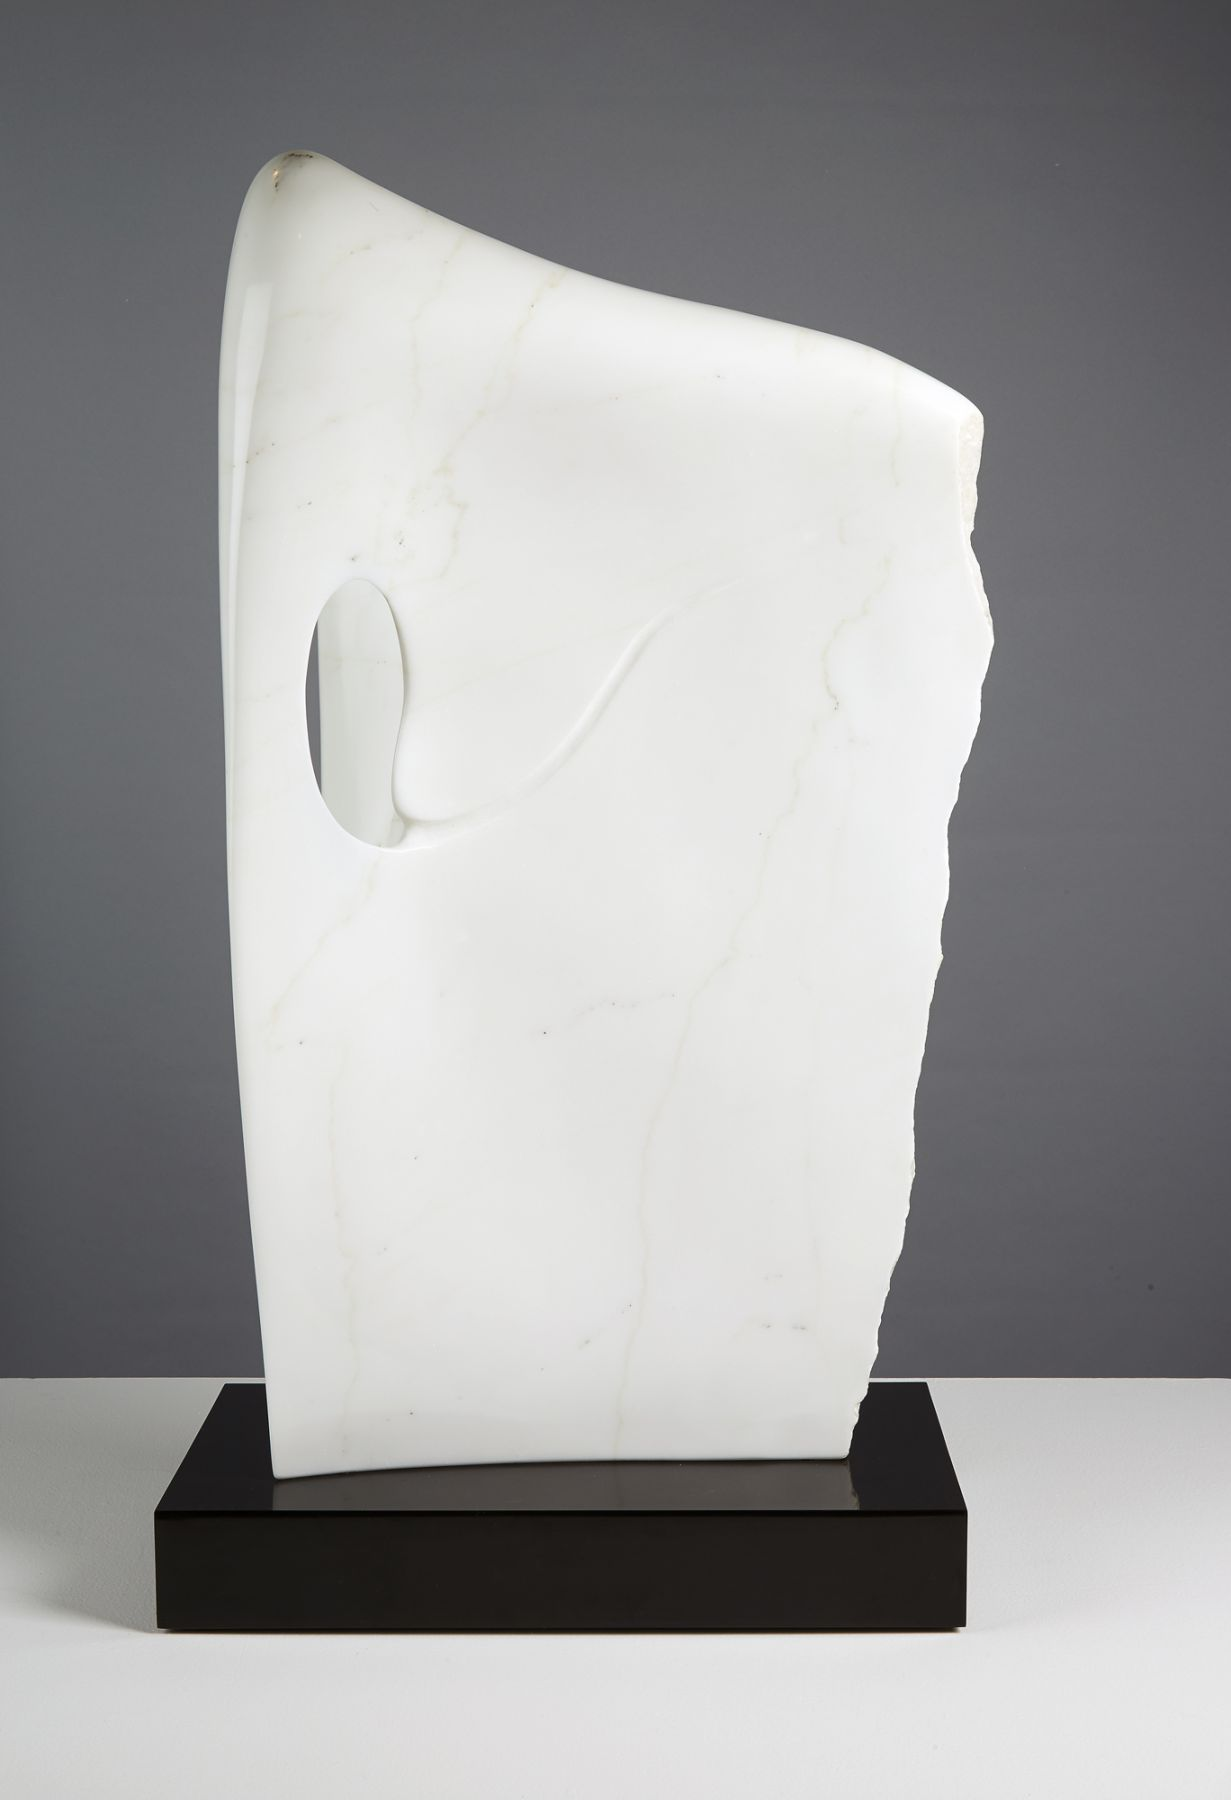 Charlie Kaplan, Intertwined, 2012, front view